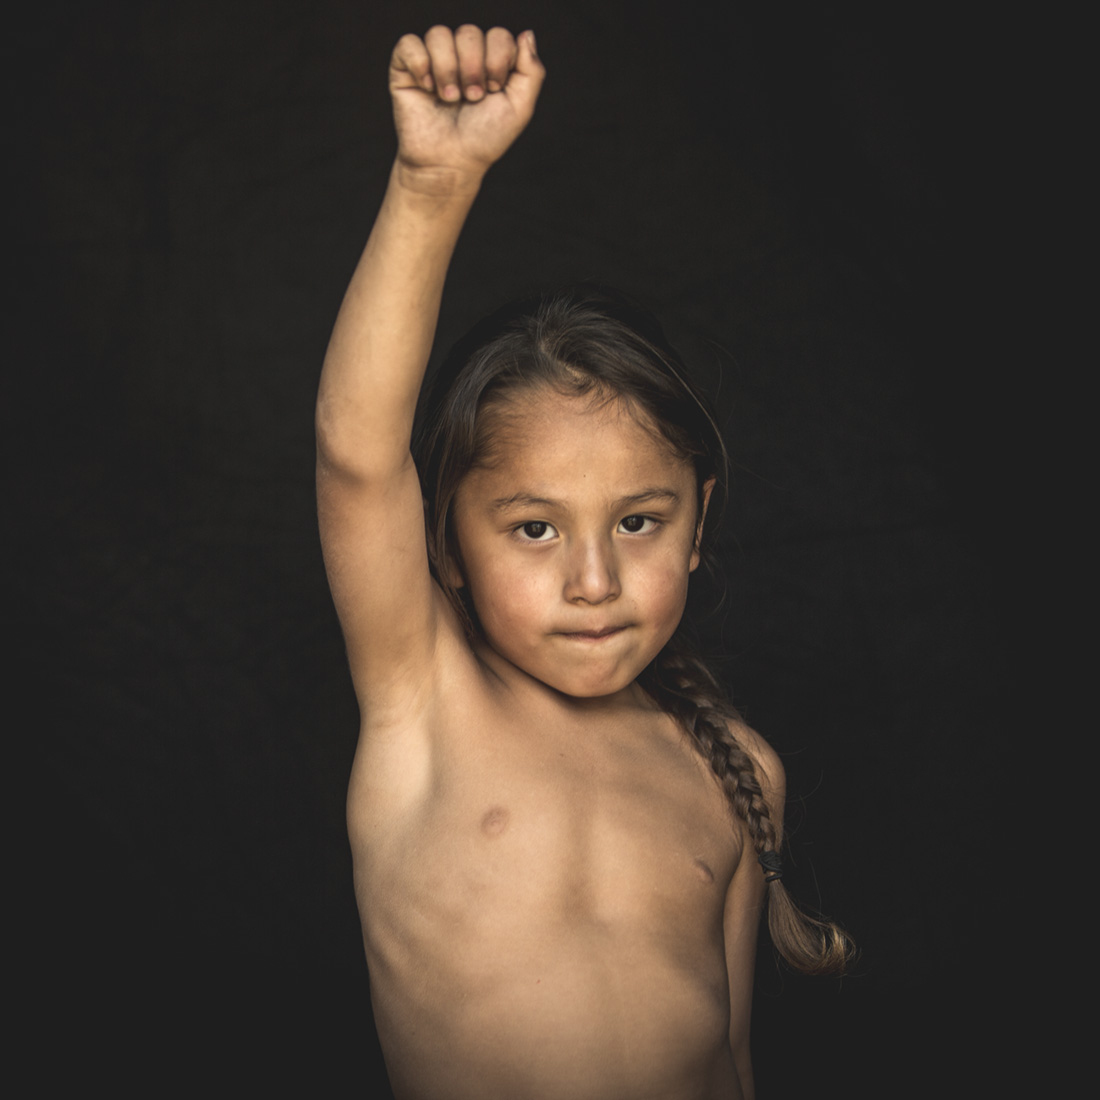 A young boy exhibits the pride and resolve of his Native people at the Standing Rock Reservation in Cannon Ball, North Dakota.